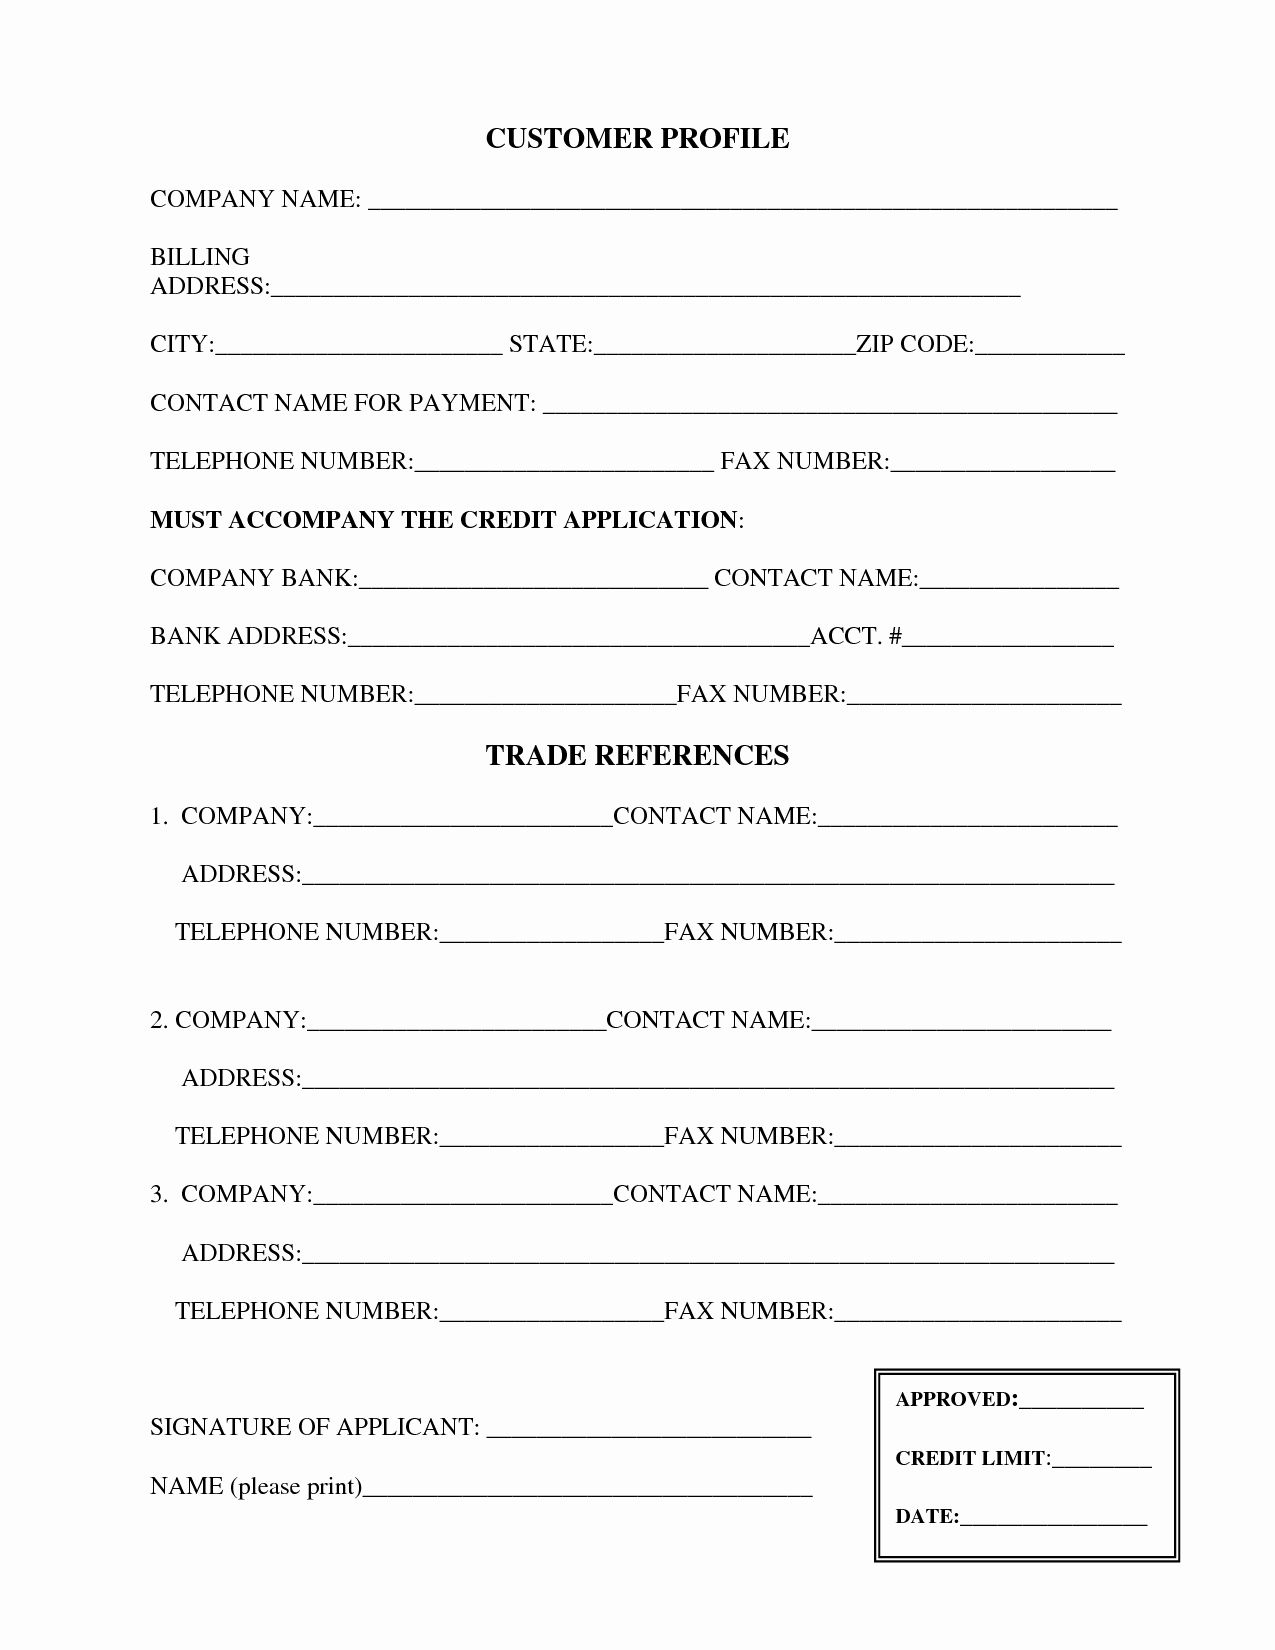 30 Credit Reference Form Template In 2020 With Images